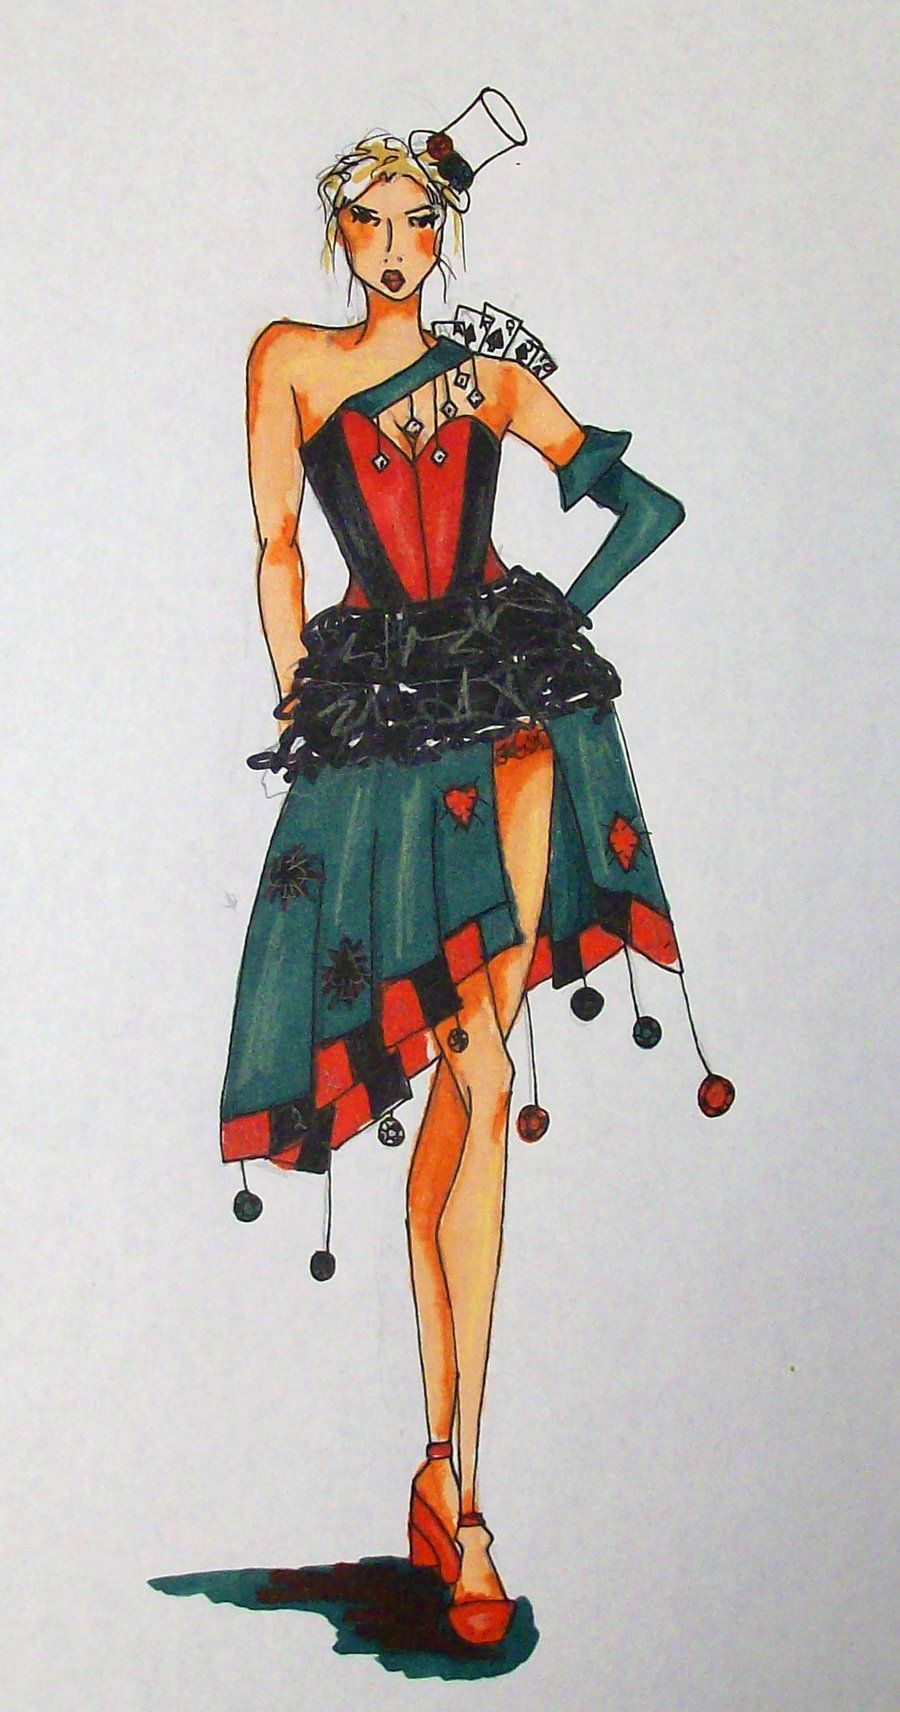 Halloween costumes · lady luck & lady luck | Holidays | Pinterest | Costumes and Halloween costumes